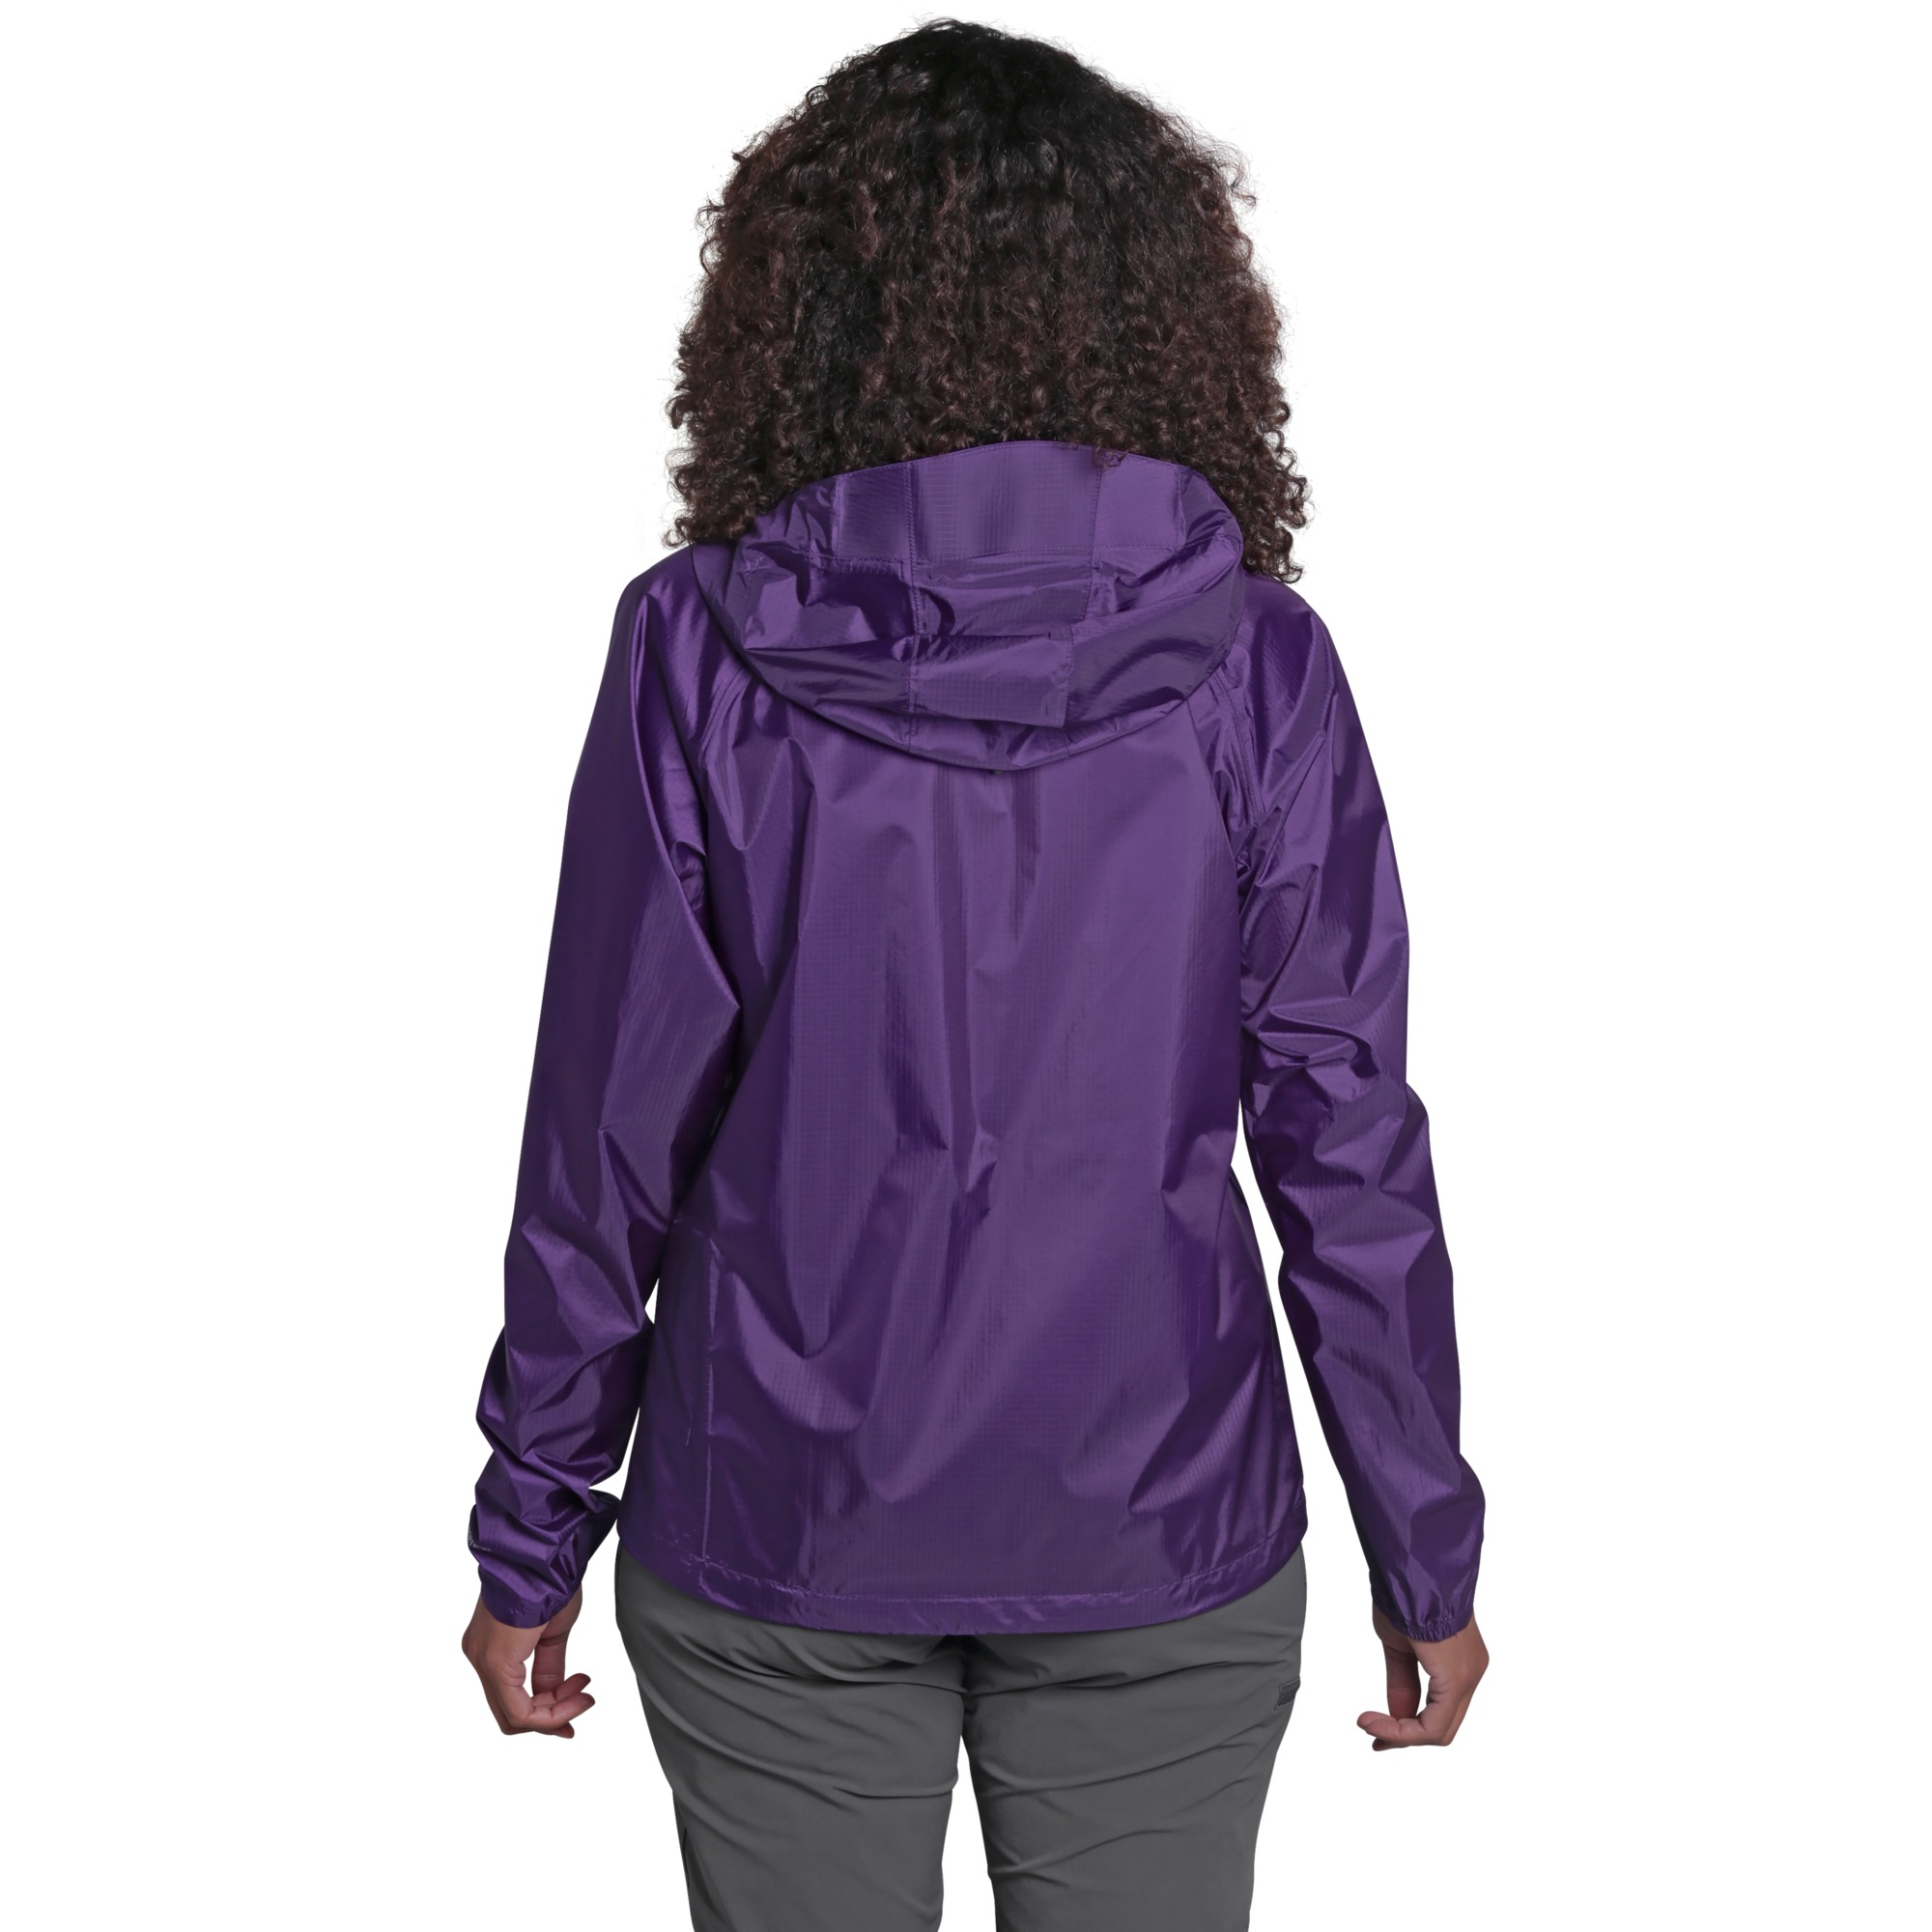 24ebf9badc01 Women s Helium II Jacket - black charcoal